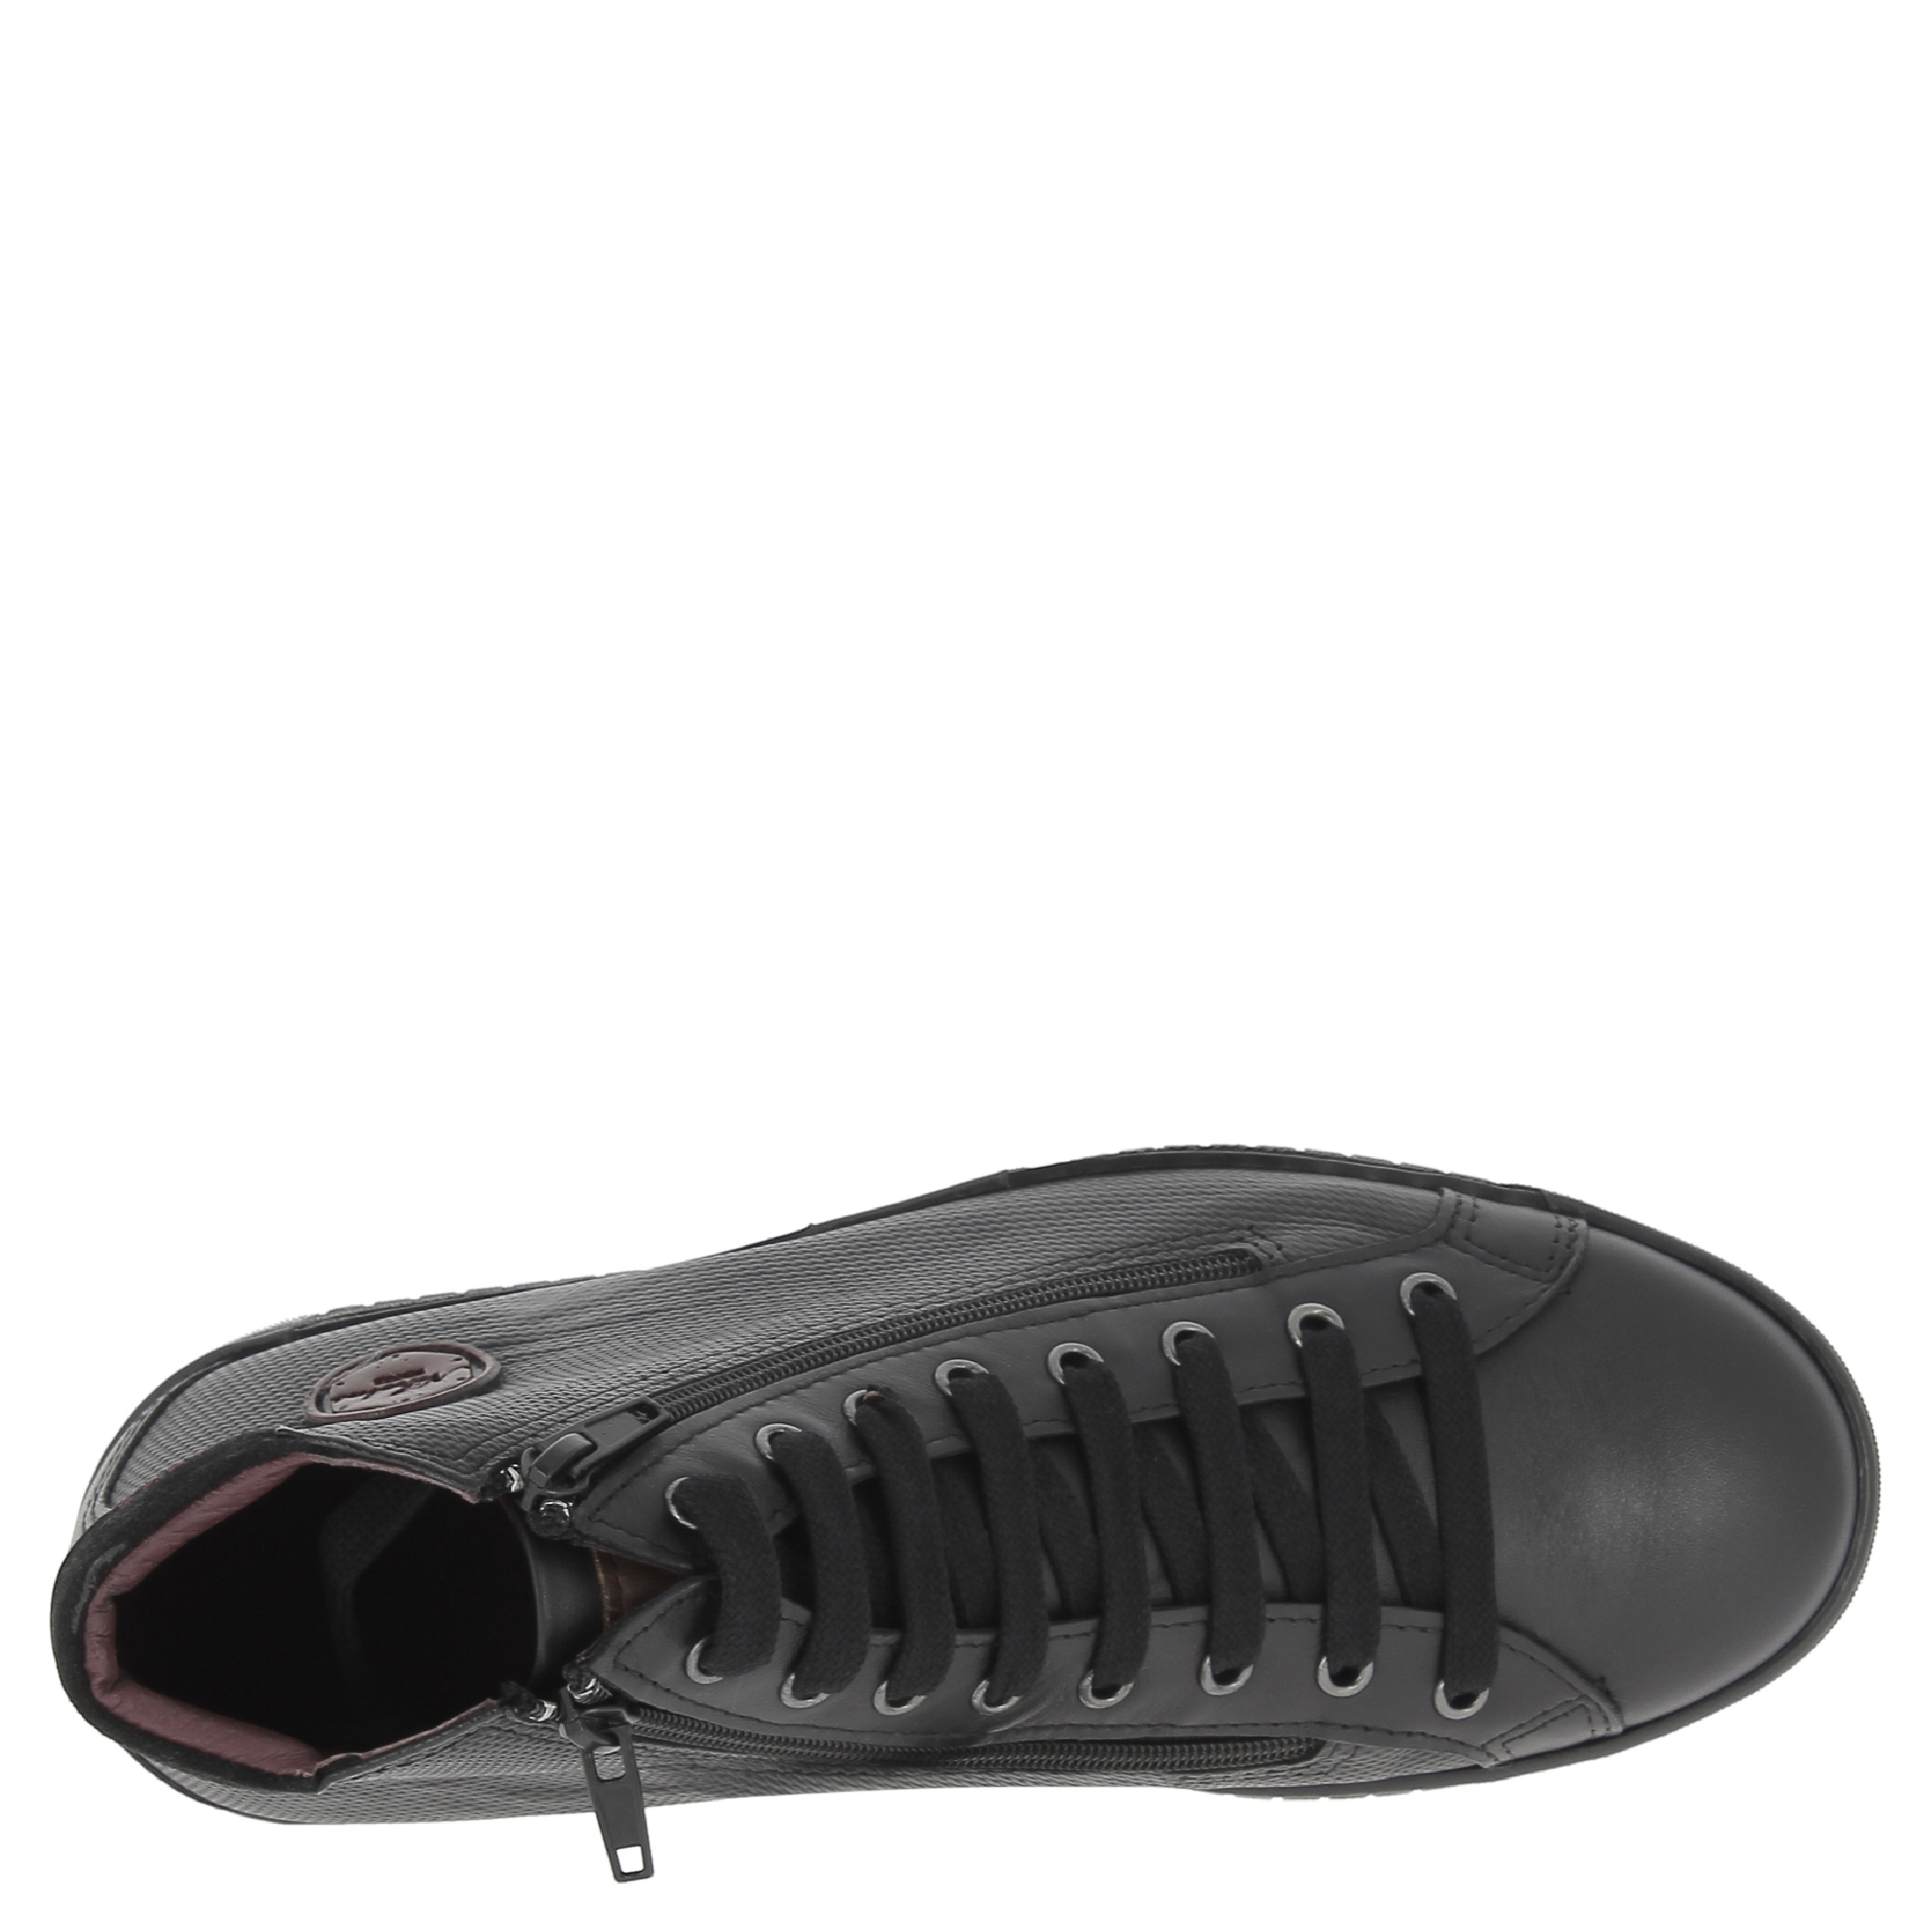 Nikolas-men-039-s-hi-top-trainers-in-black-Calf-leather-with-suede-ankle-detail thumbnail 11